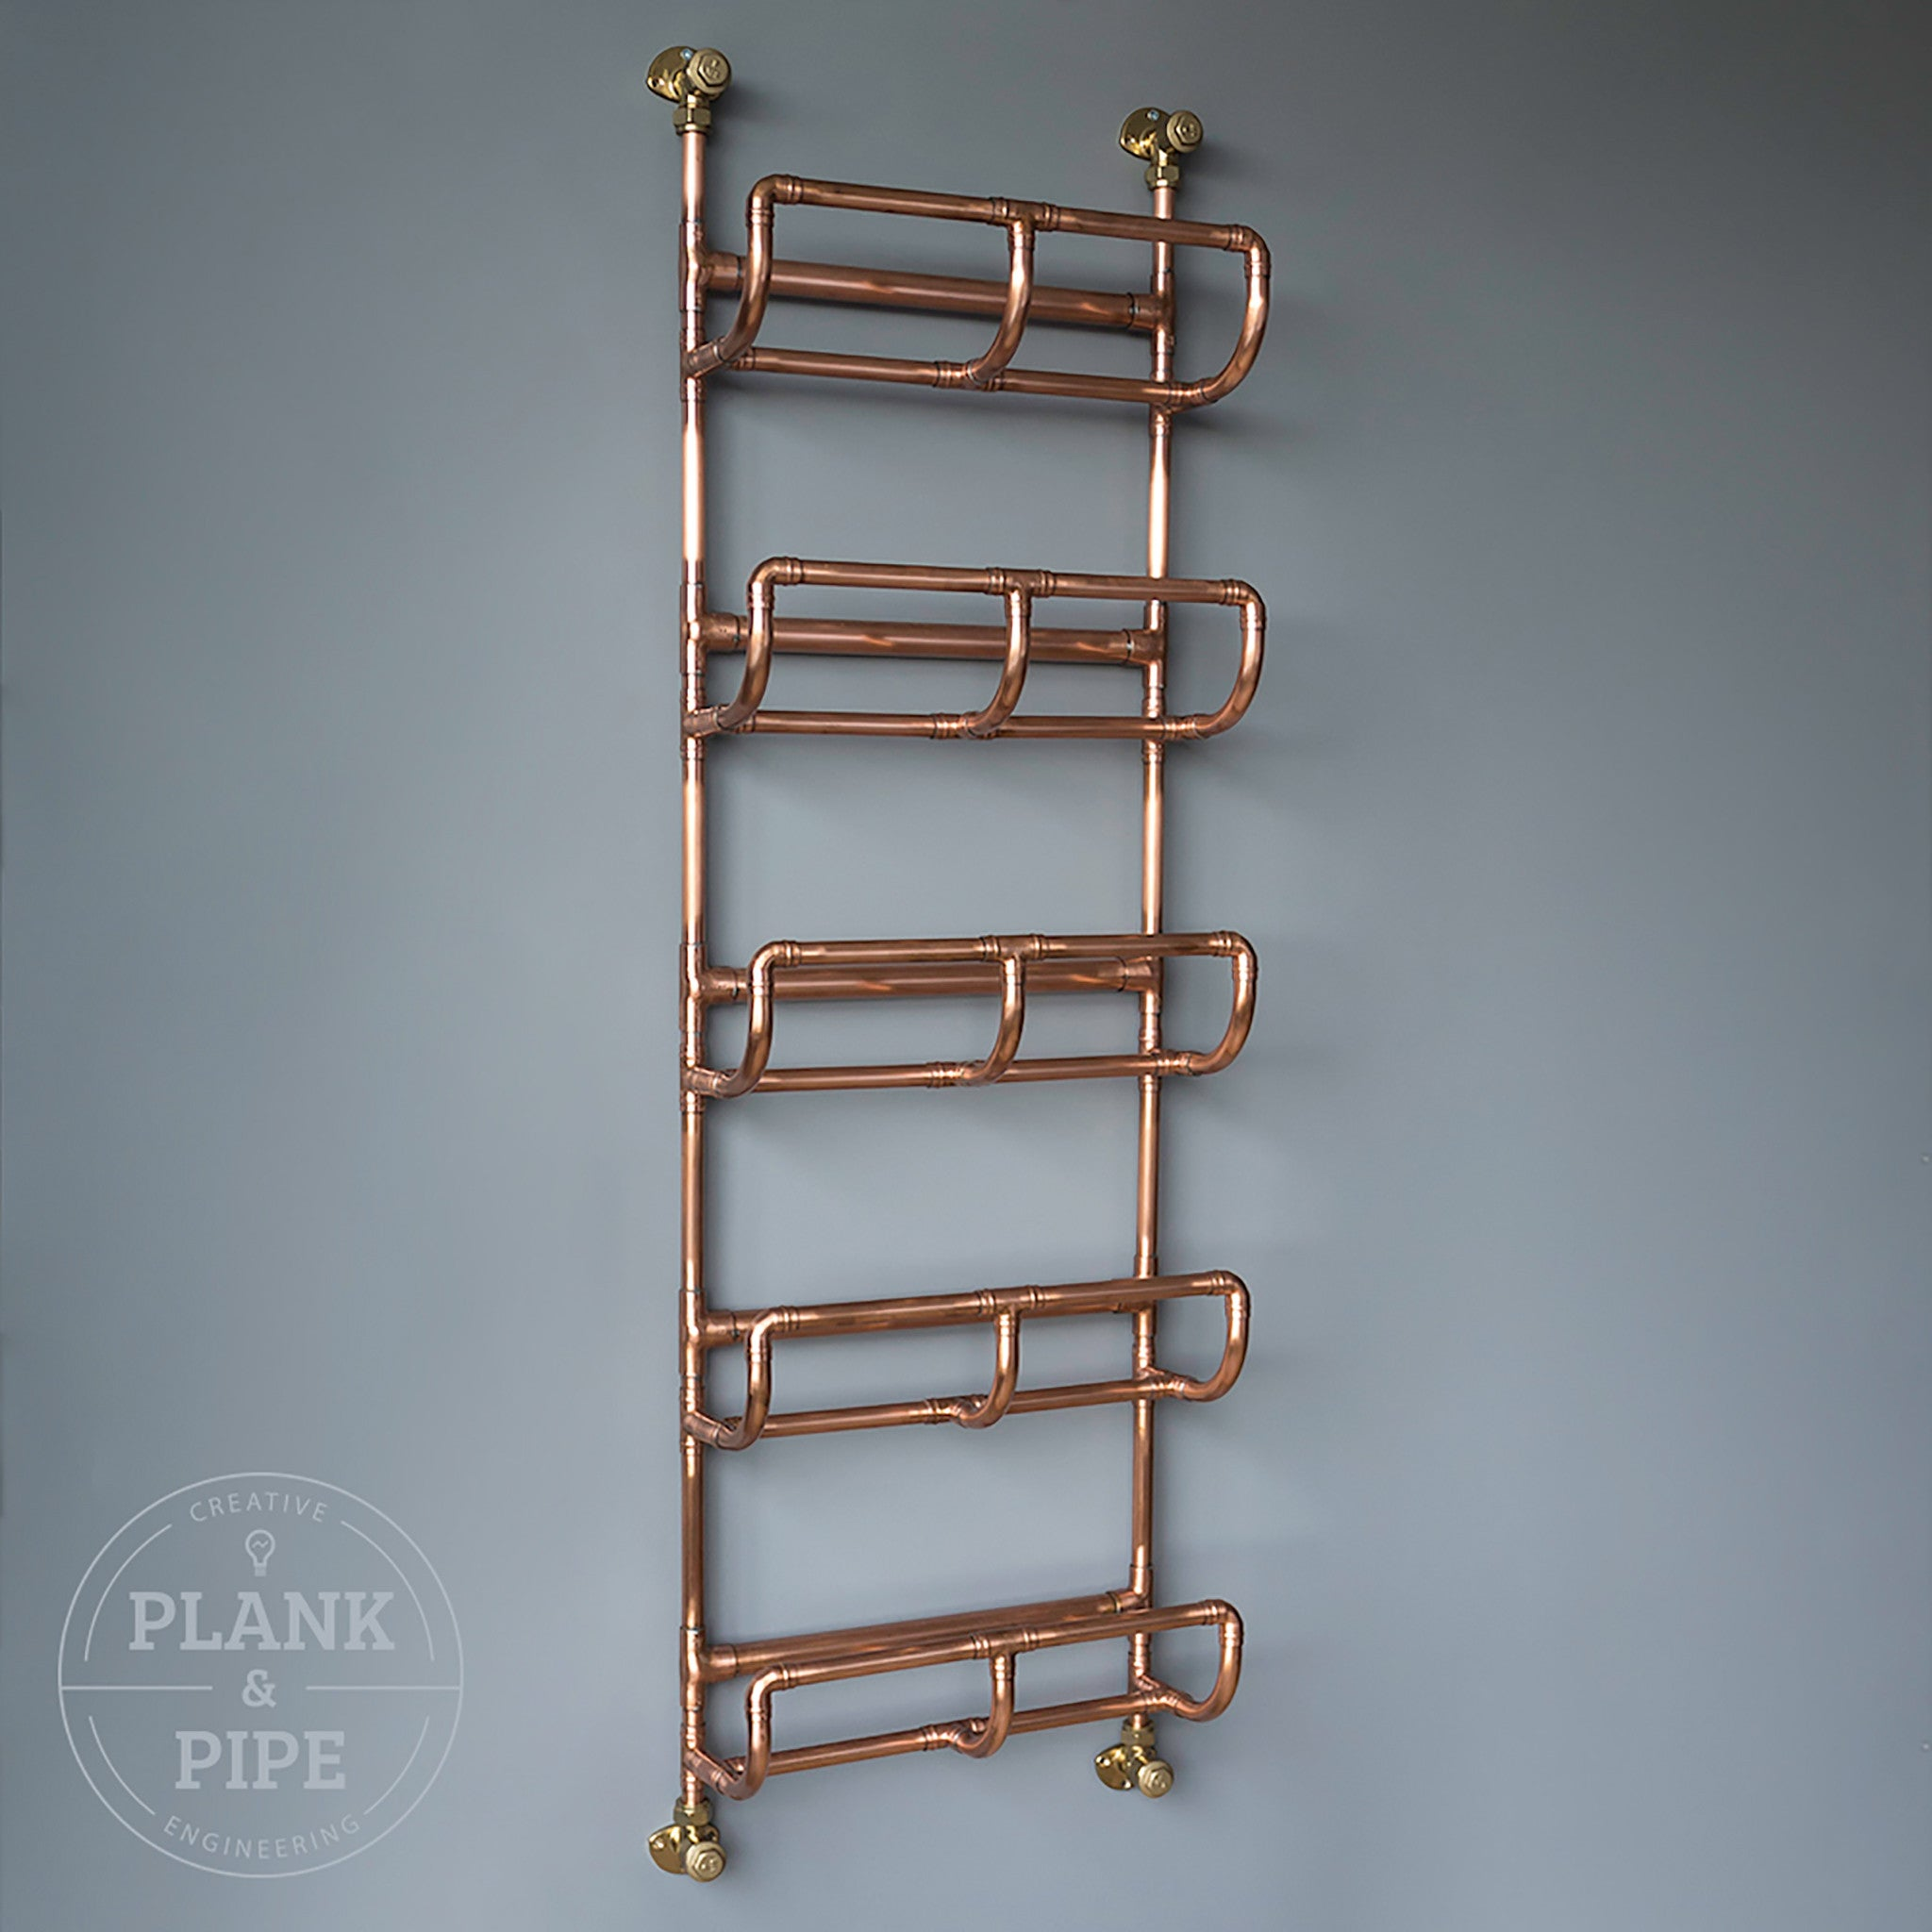 Copper towel rack with 5 tiers